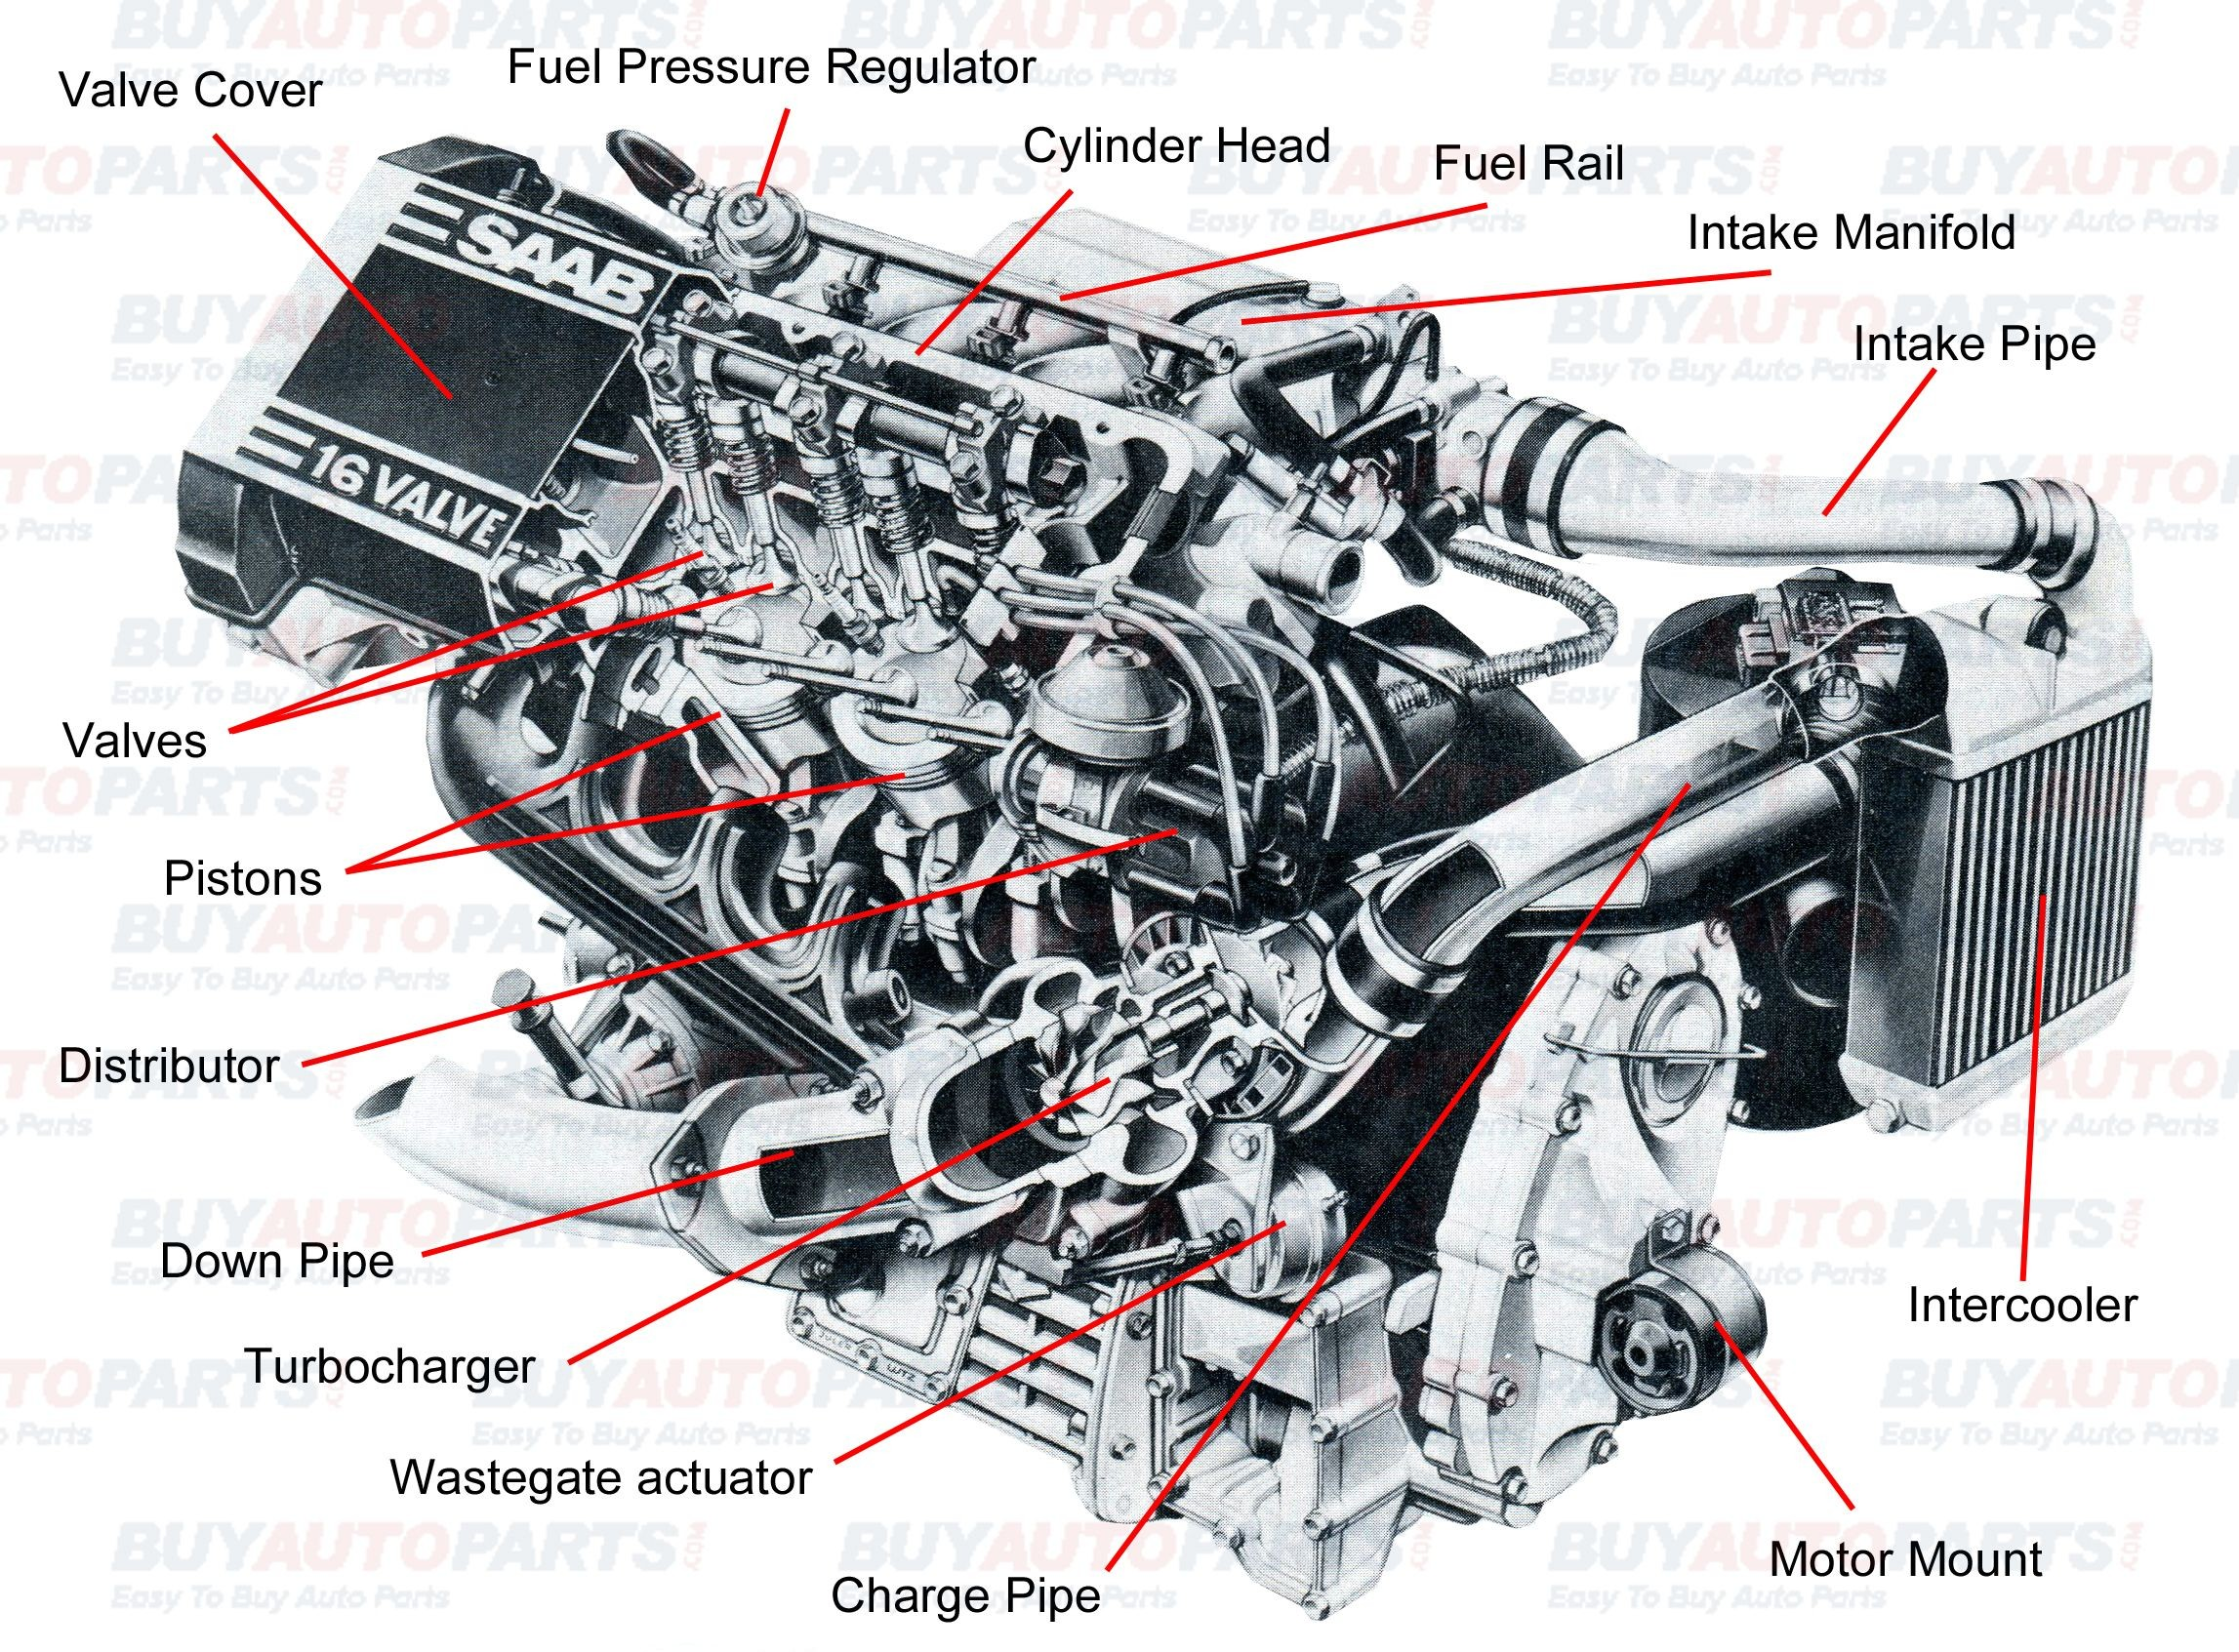 Straight 6 Engine Diagram All Internal Bustion Engines Have the Same Basic Ponents the Of Straight 6 Engine Diagram